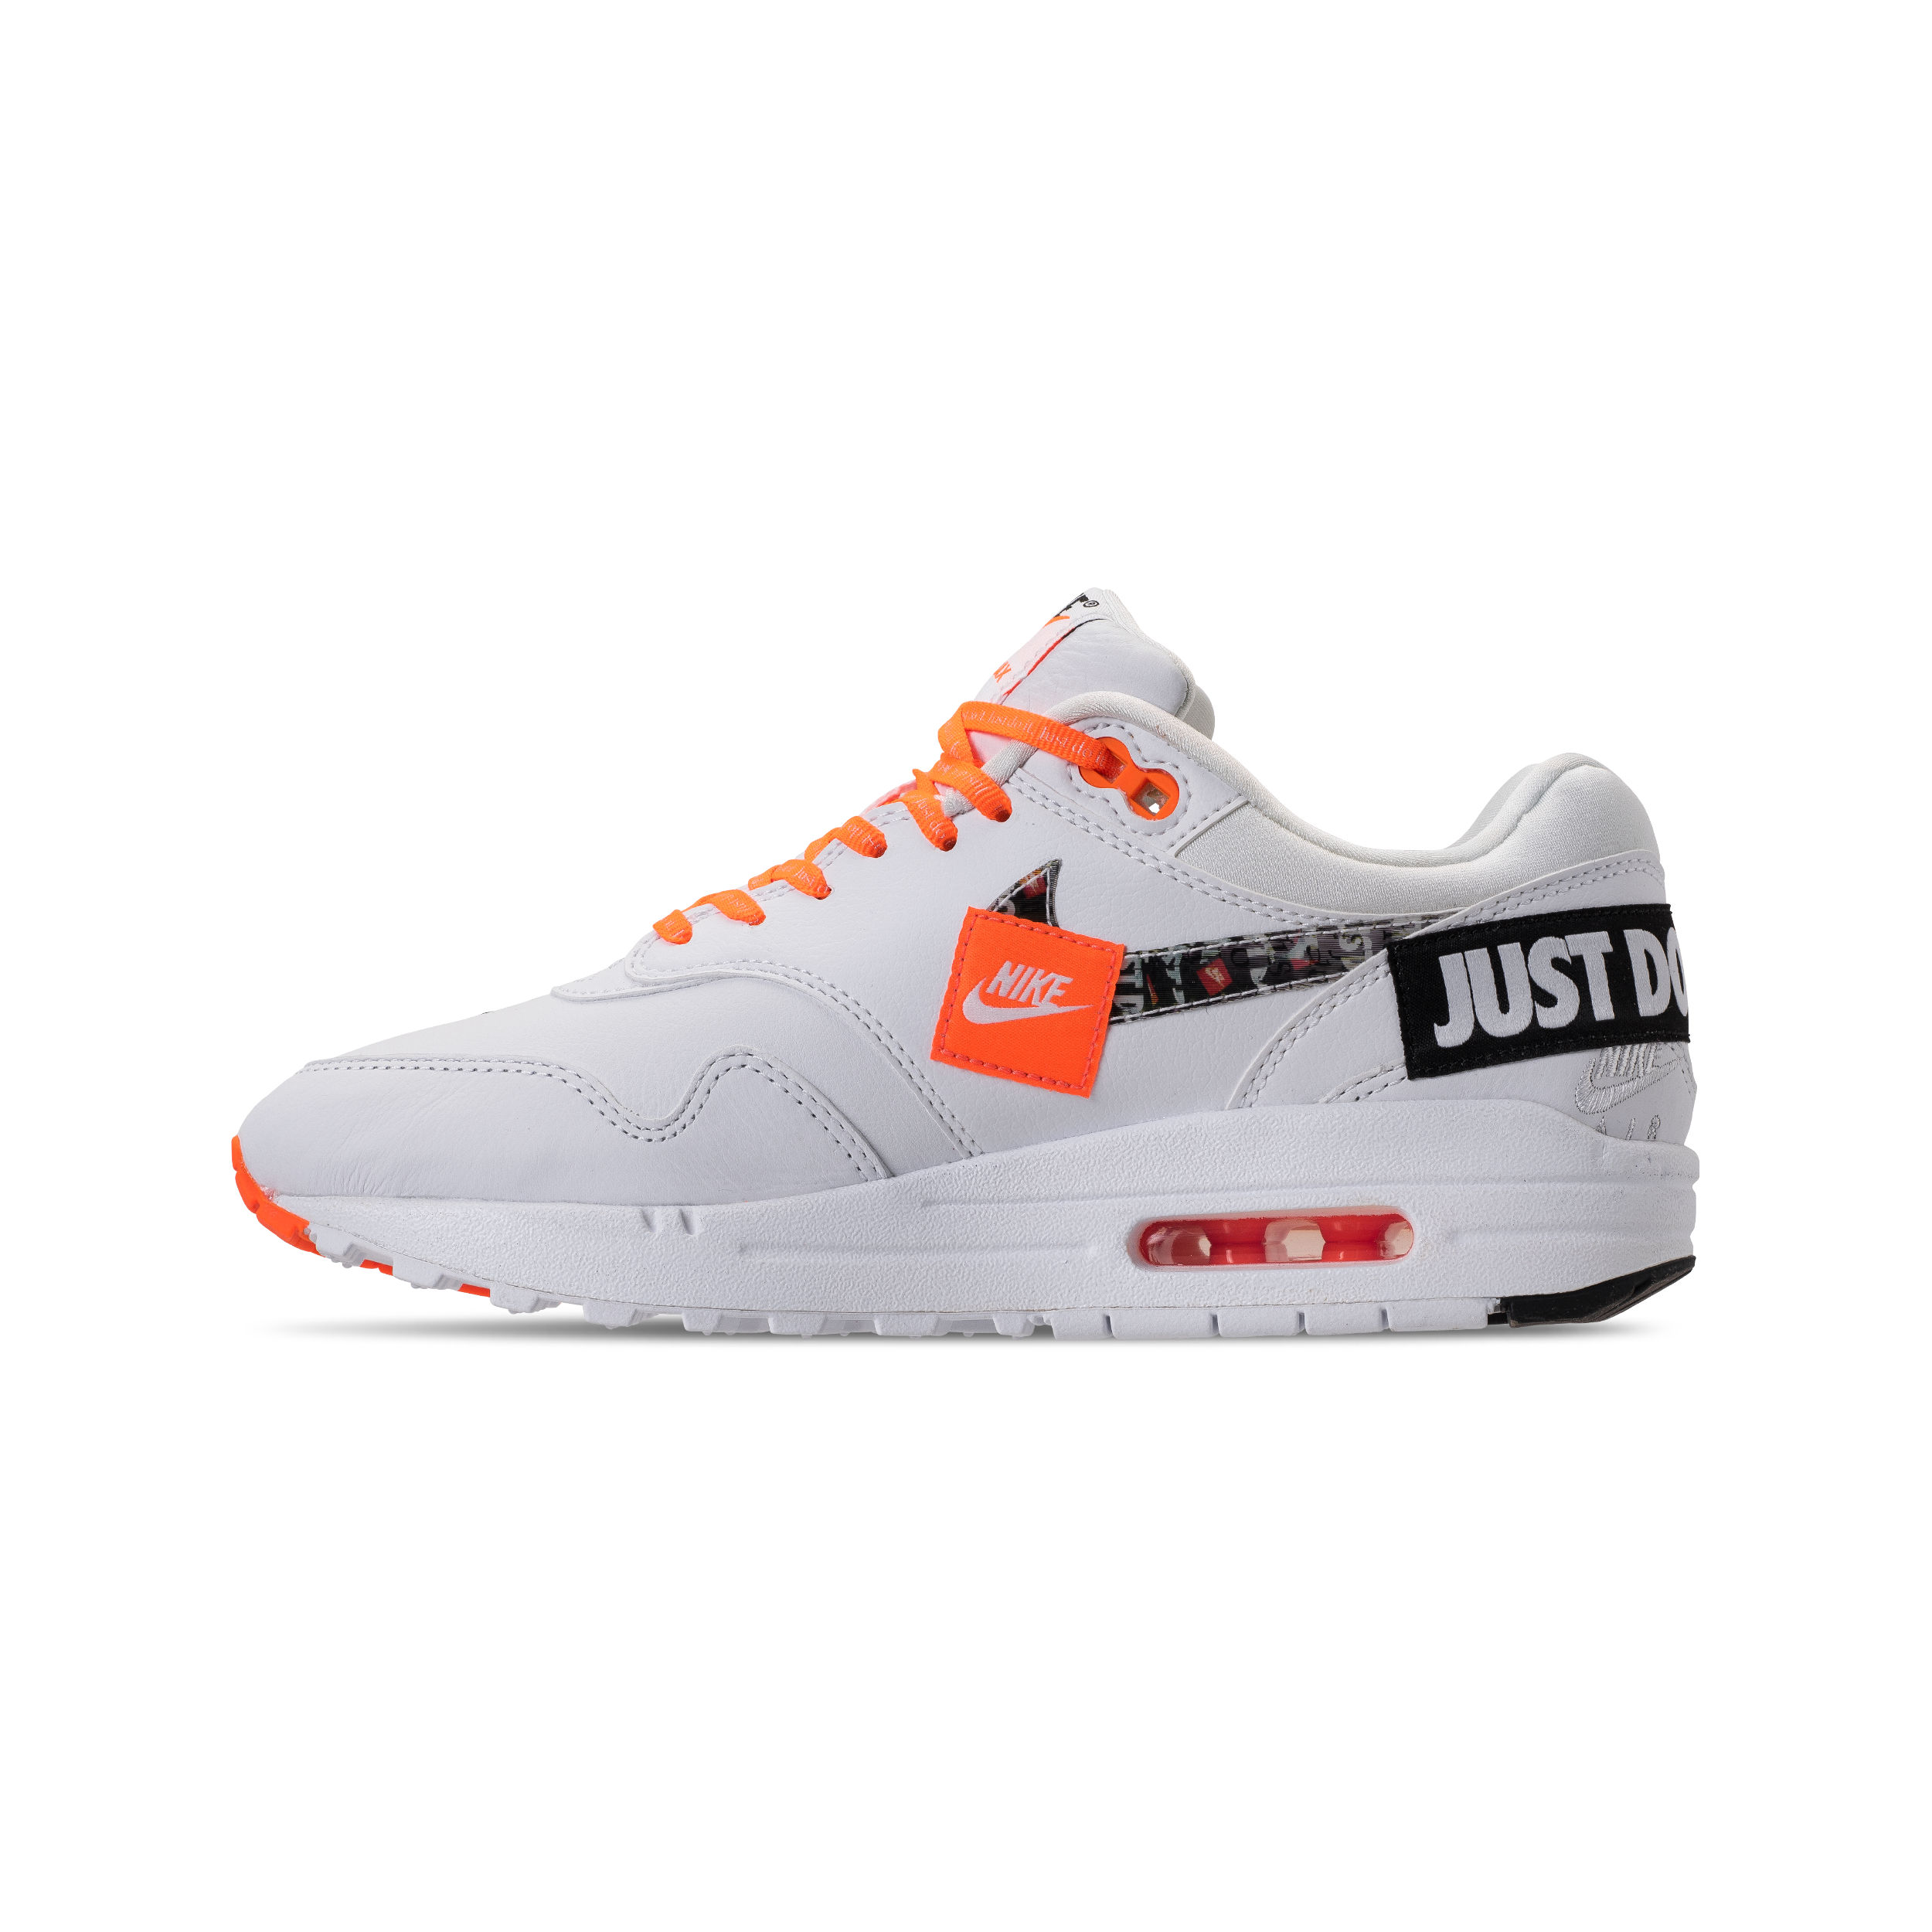 air max 1 white black total orange jdi